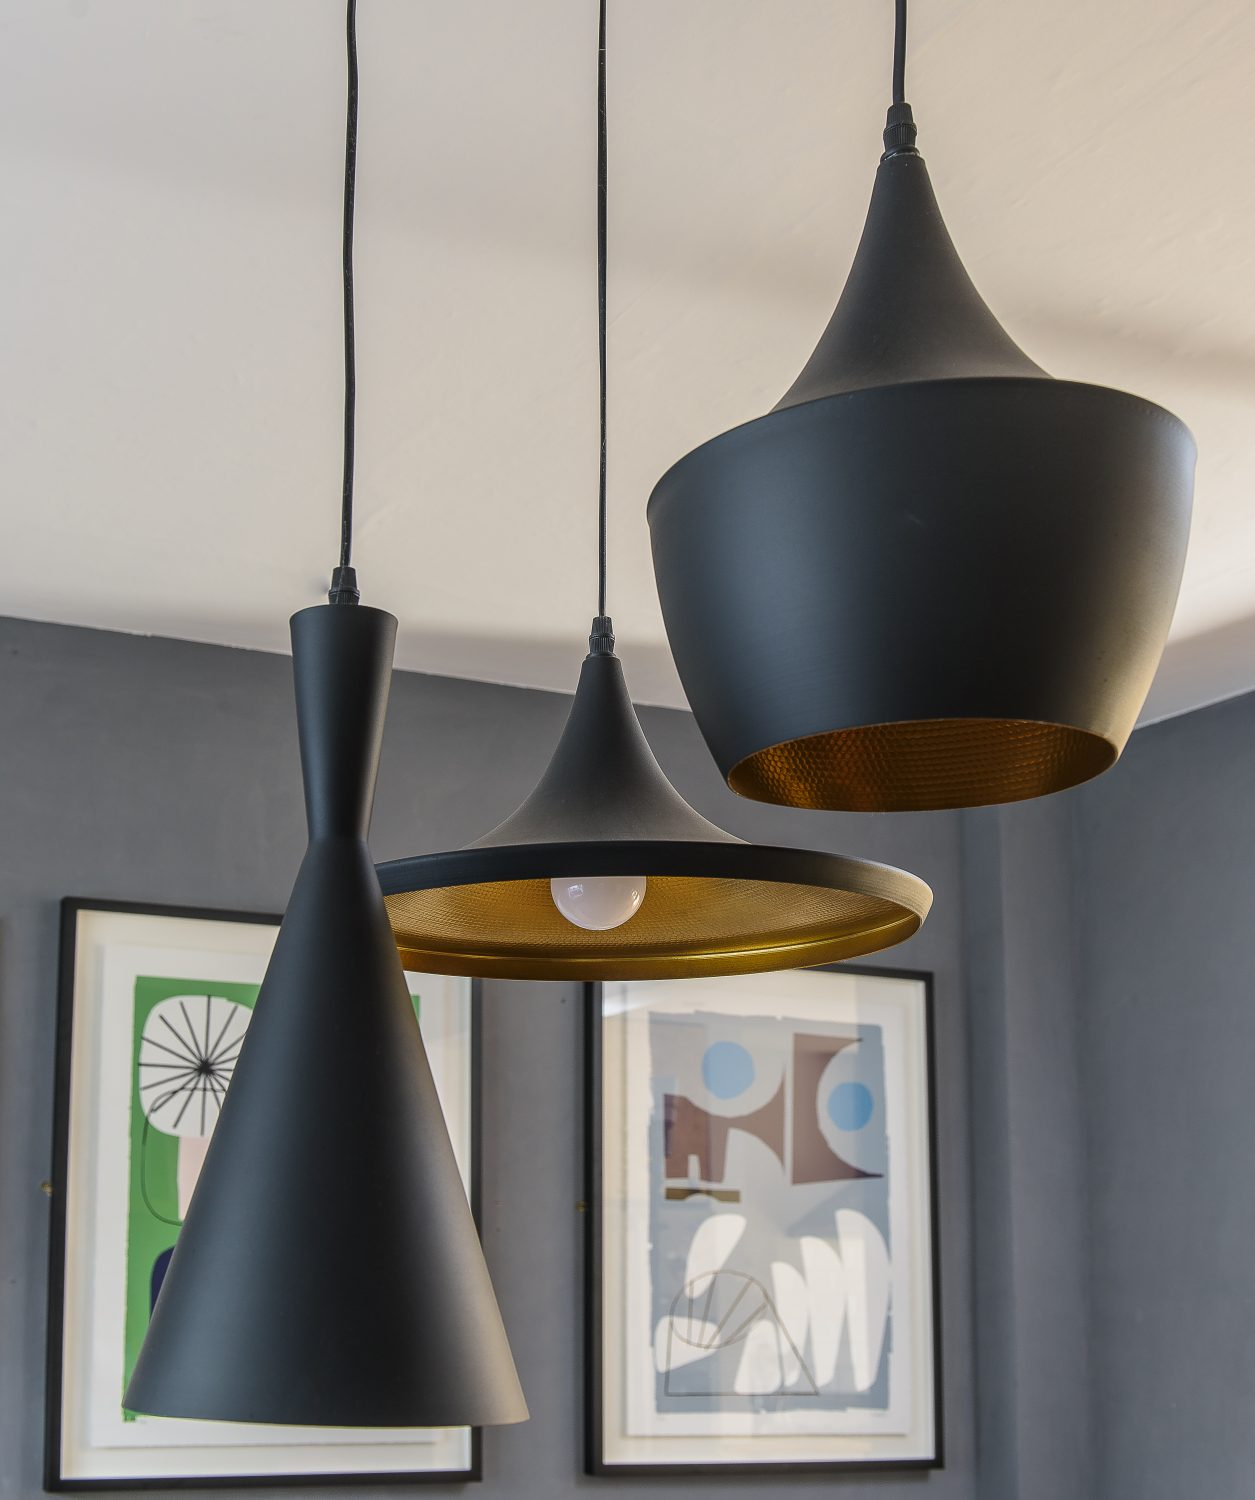 Metal pendant lights, grouped above the dining table, are from Dwell